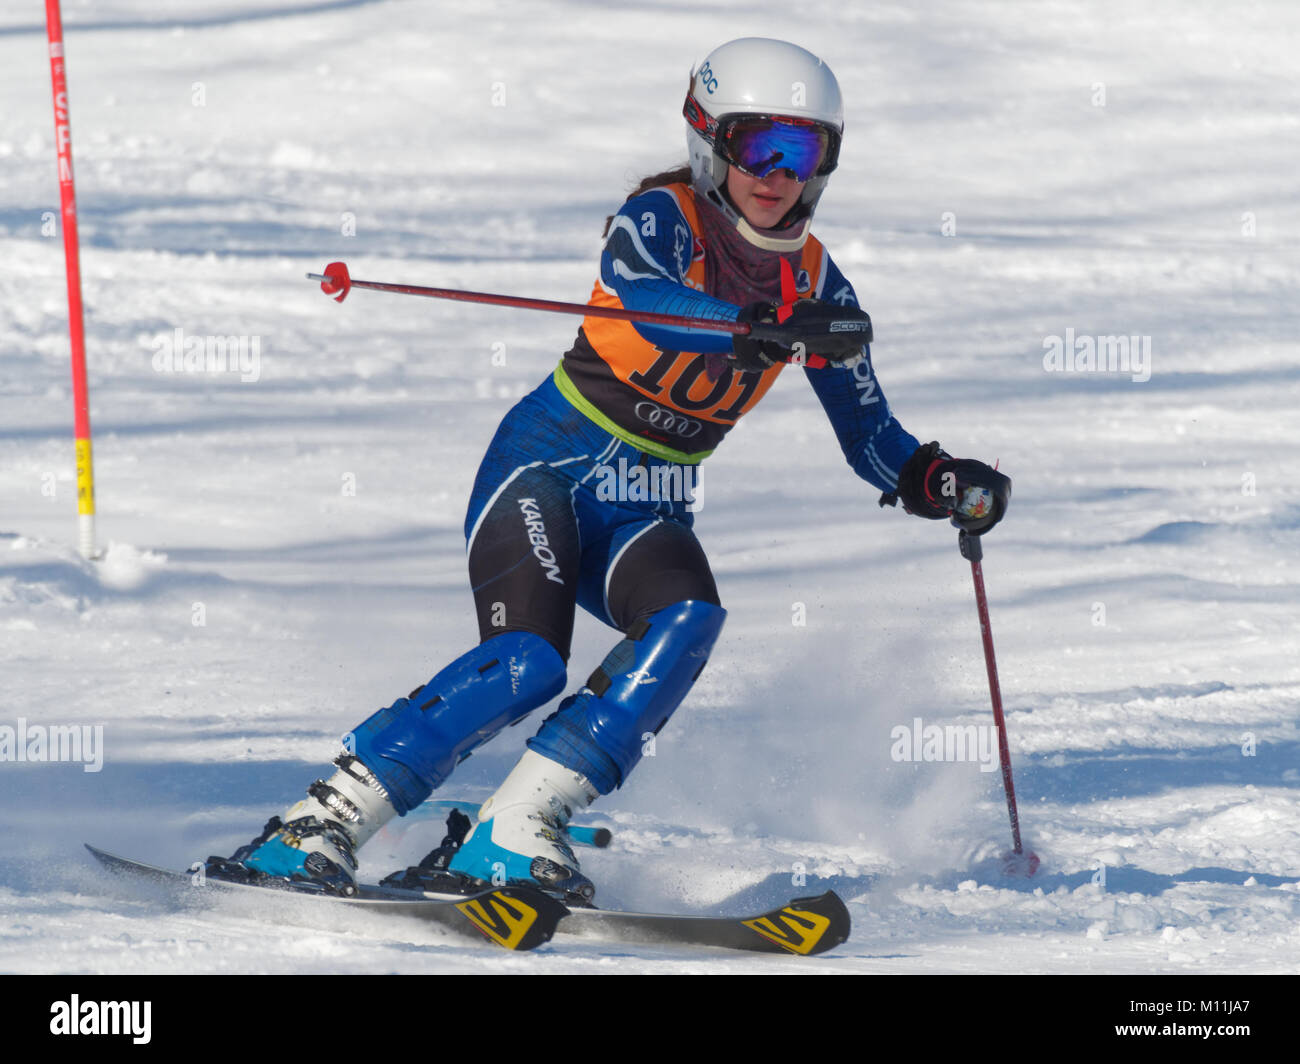 Val Saint-Come,Canada 1/14/2018.Camille Brunelle of Canada  competes  at the Super Serie Sports Experts women slalom - Stock Image